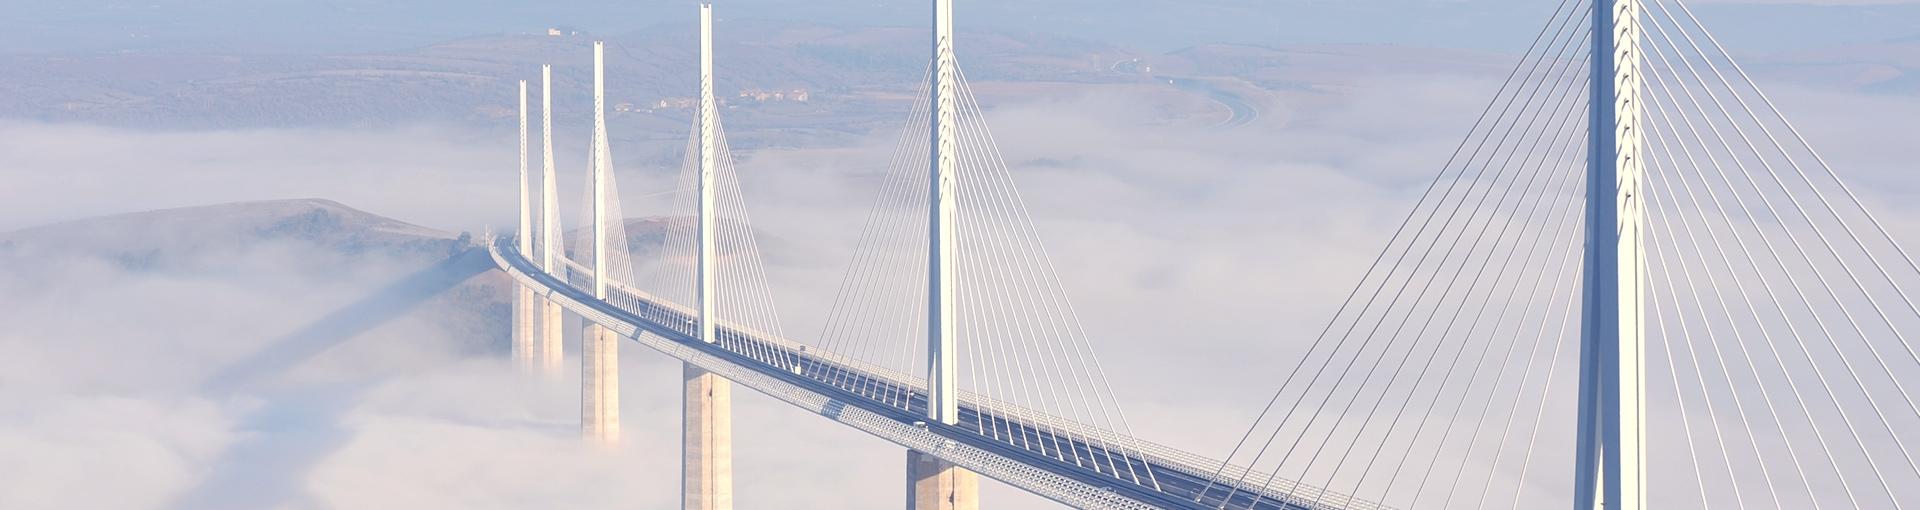 The Millau Viaduct unique heritage